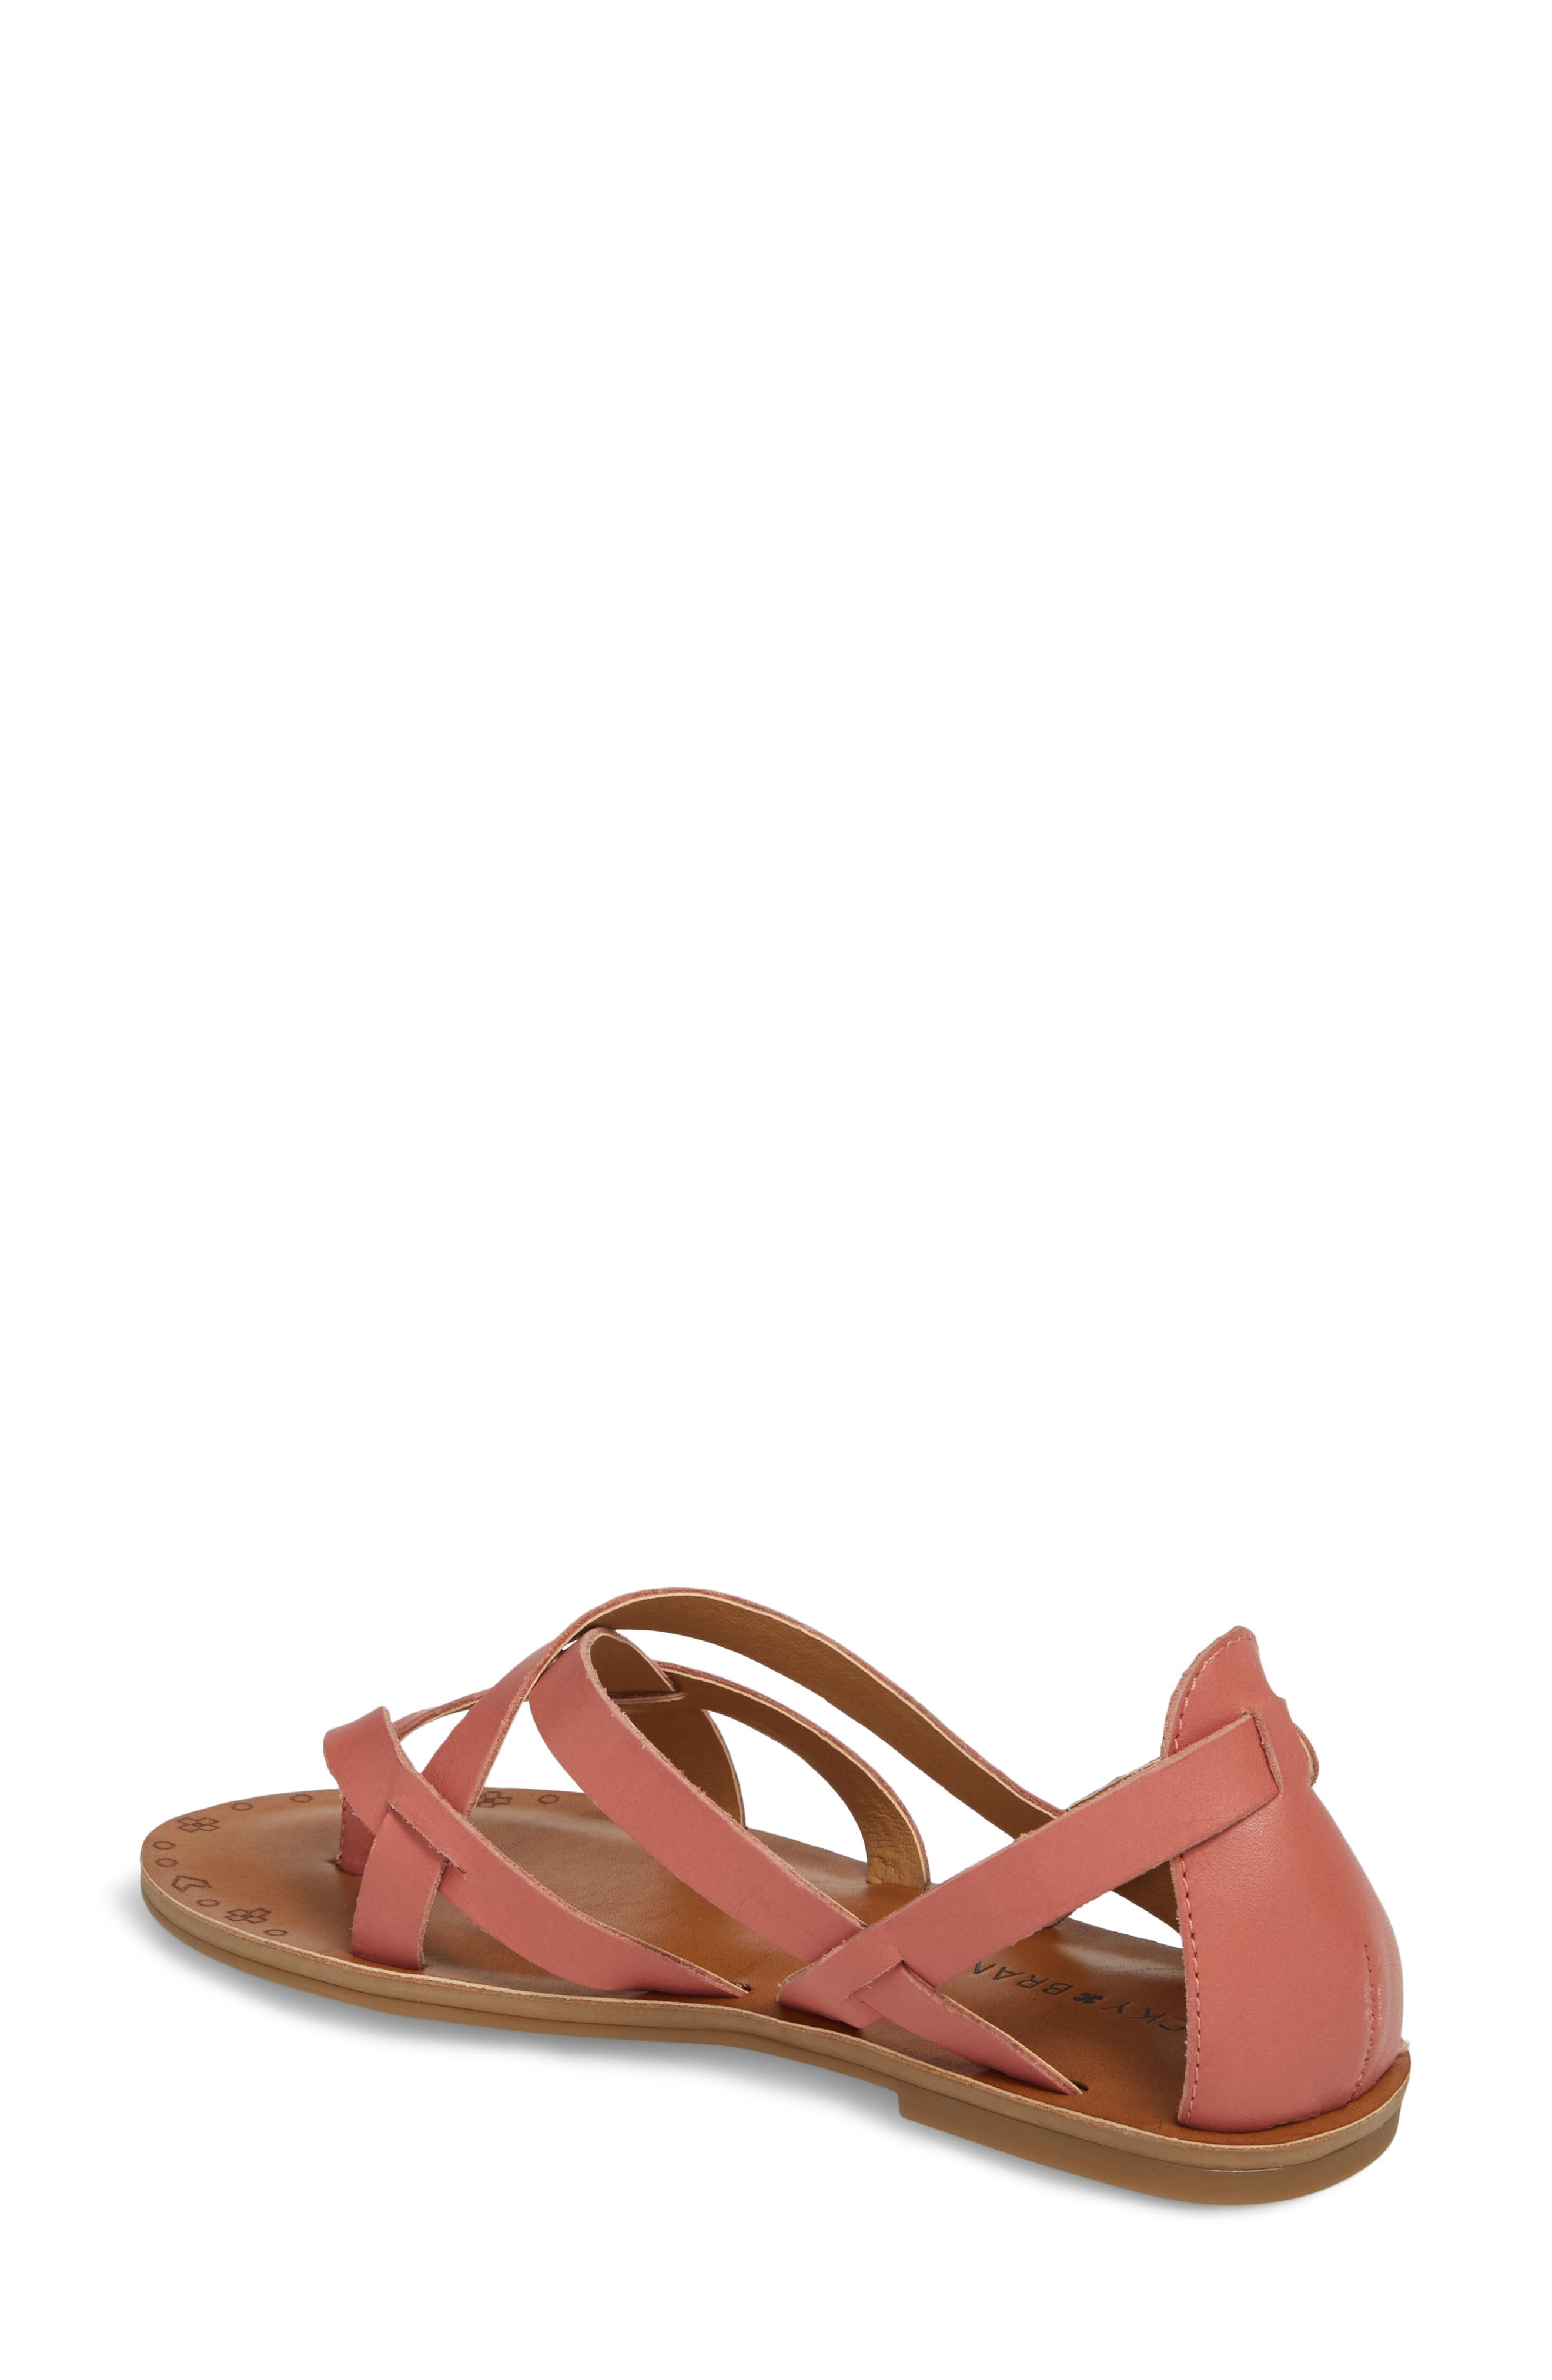 Ainsley Flat Sandal,                             Alternate thumbnail 2, color,                             Canyon Rose Leather